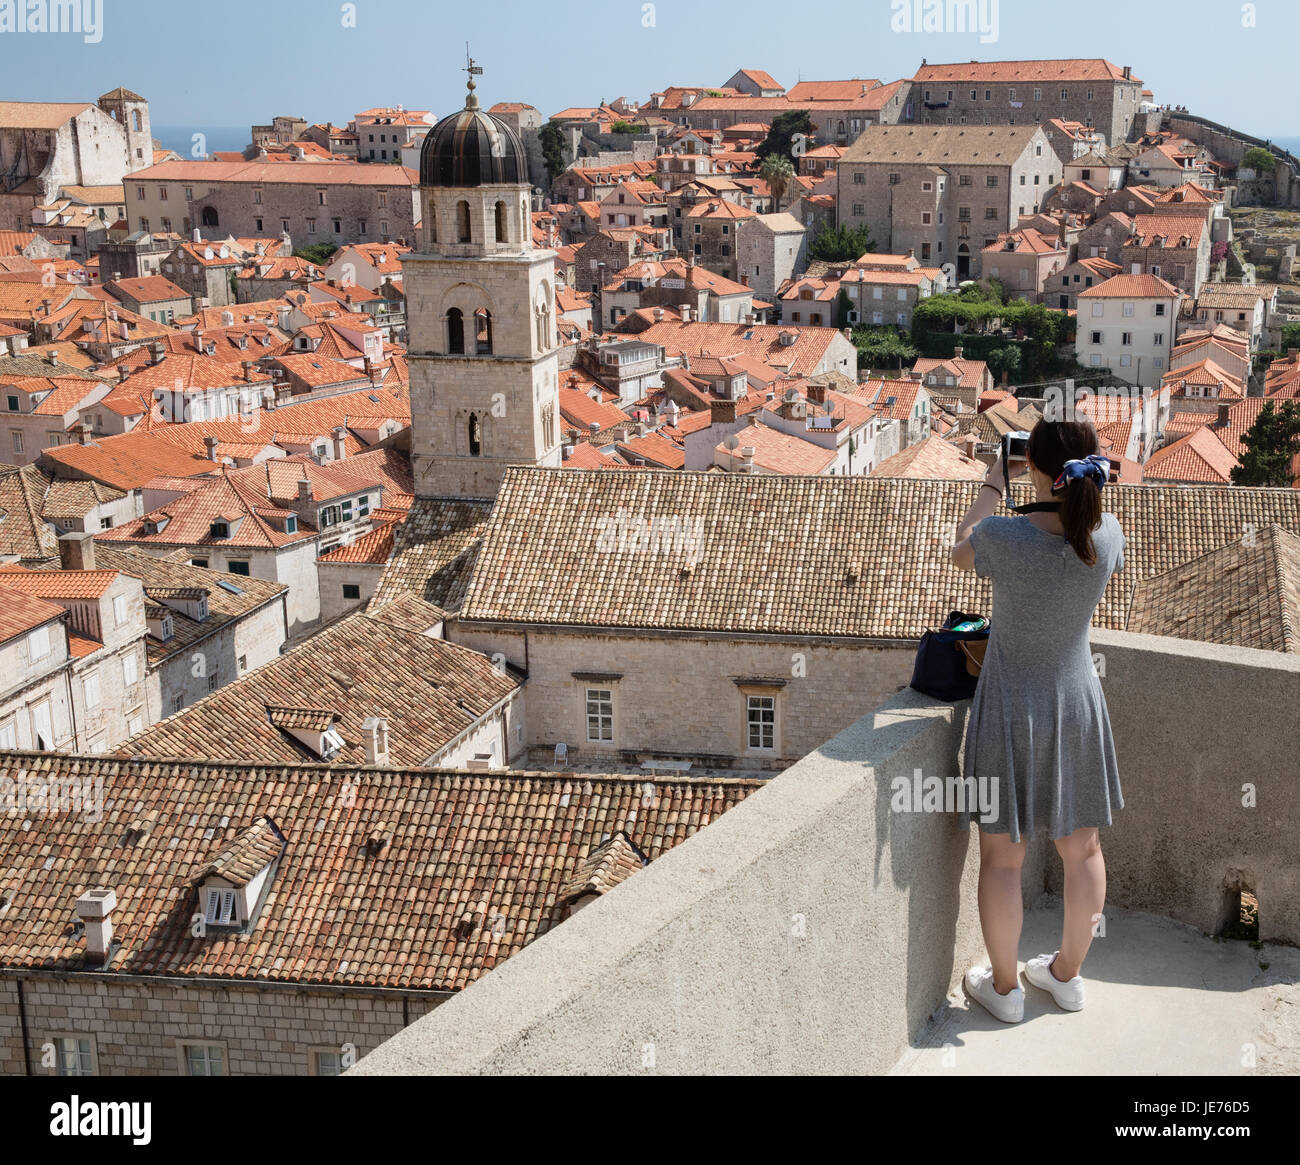 An Asian tourist taking a photograph of the medieval city of Dubrovnik on the Dalmation coast of Croatia - Stock Image